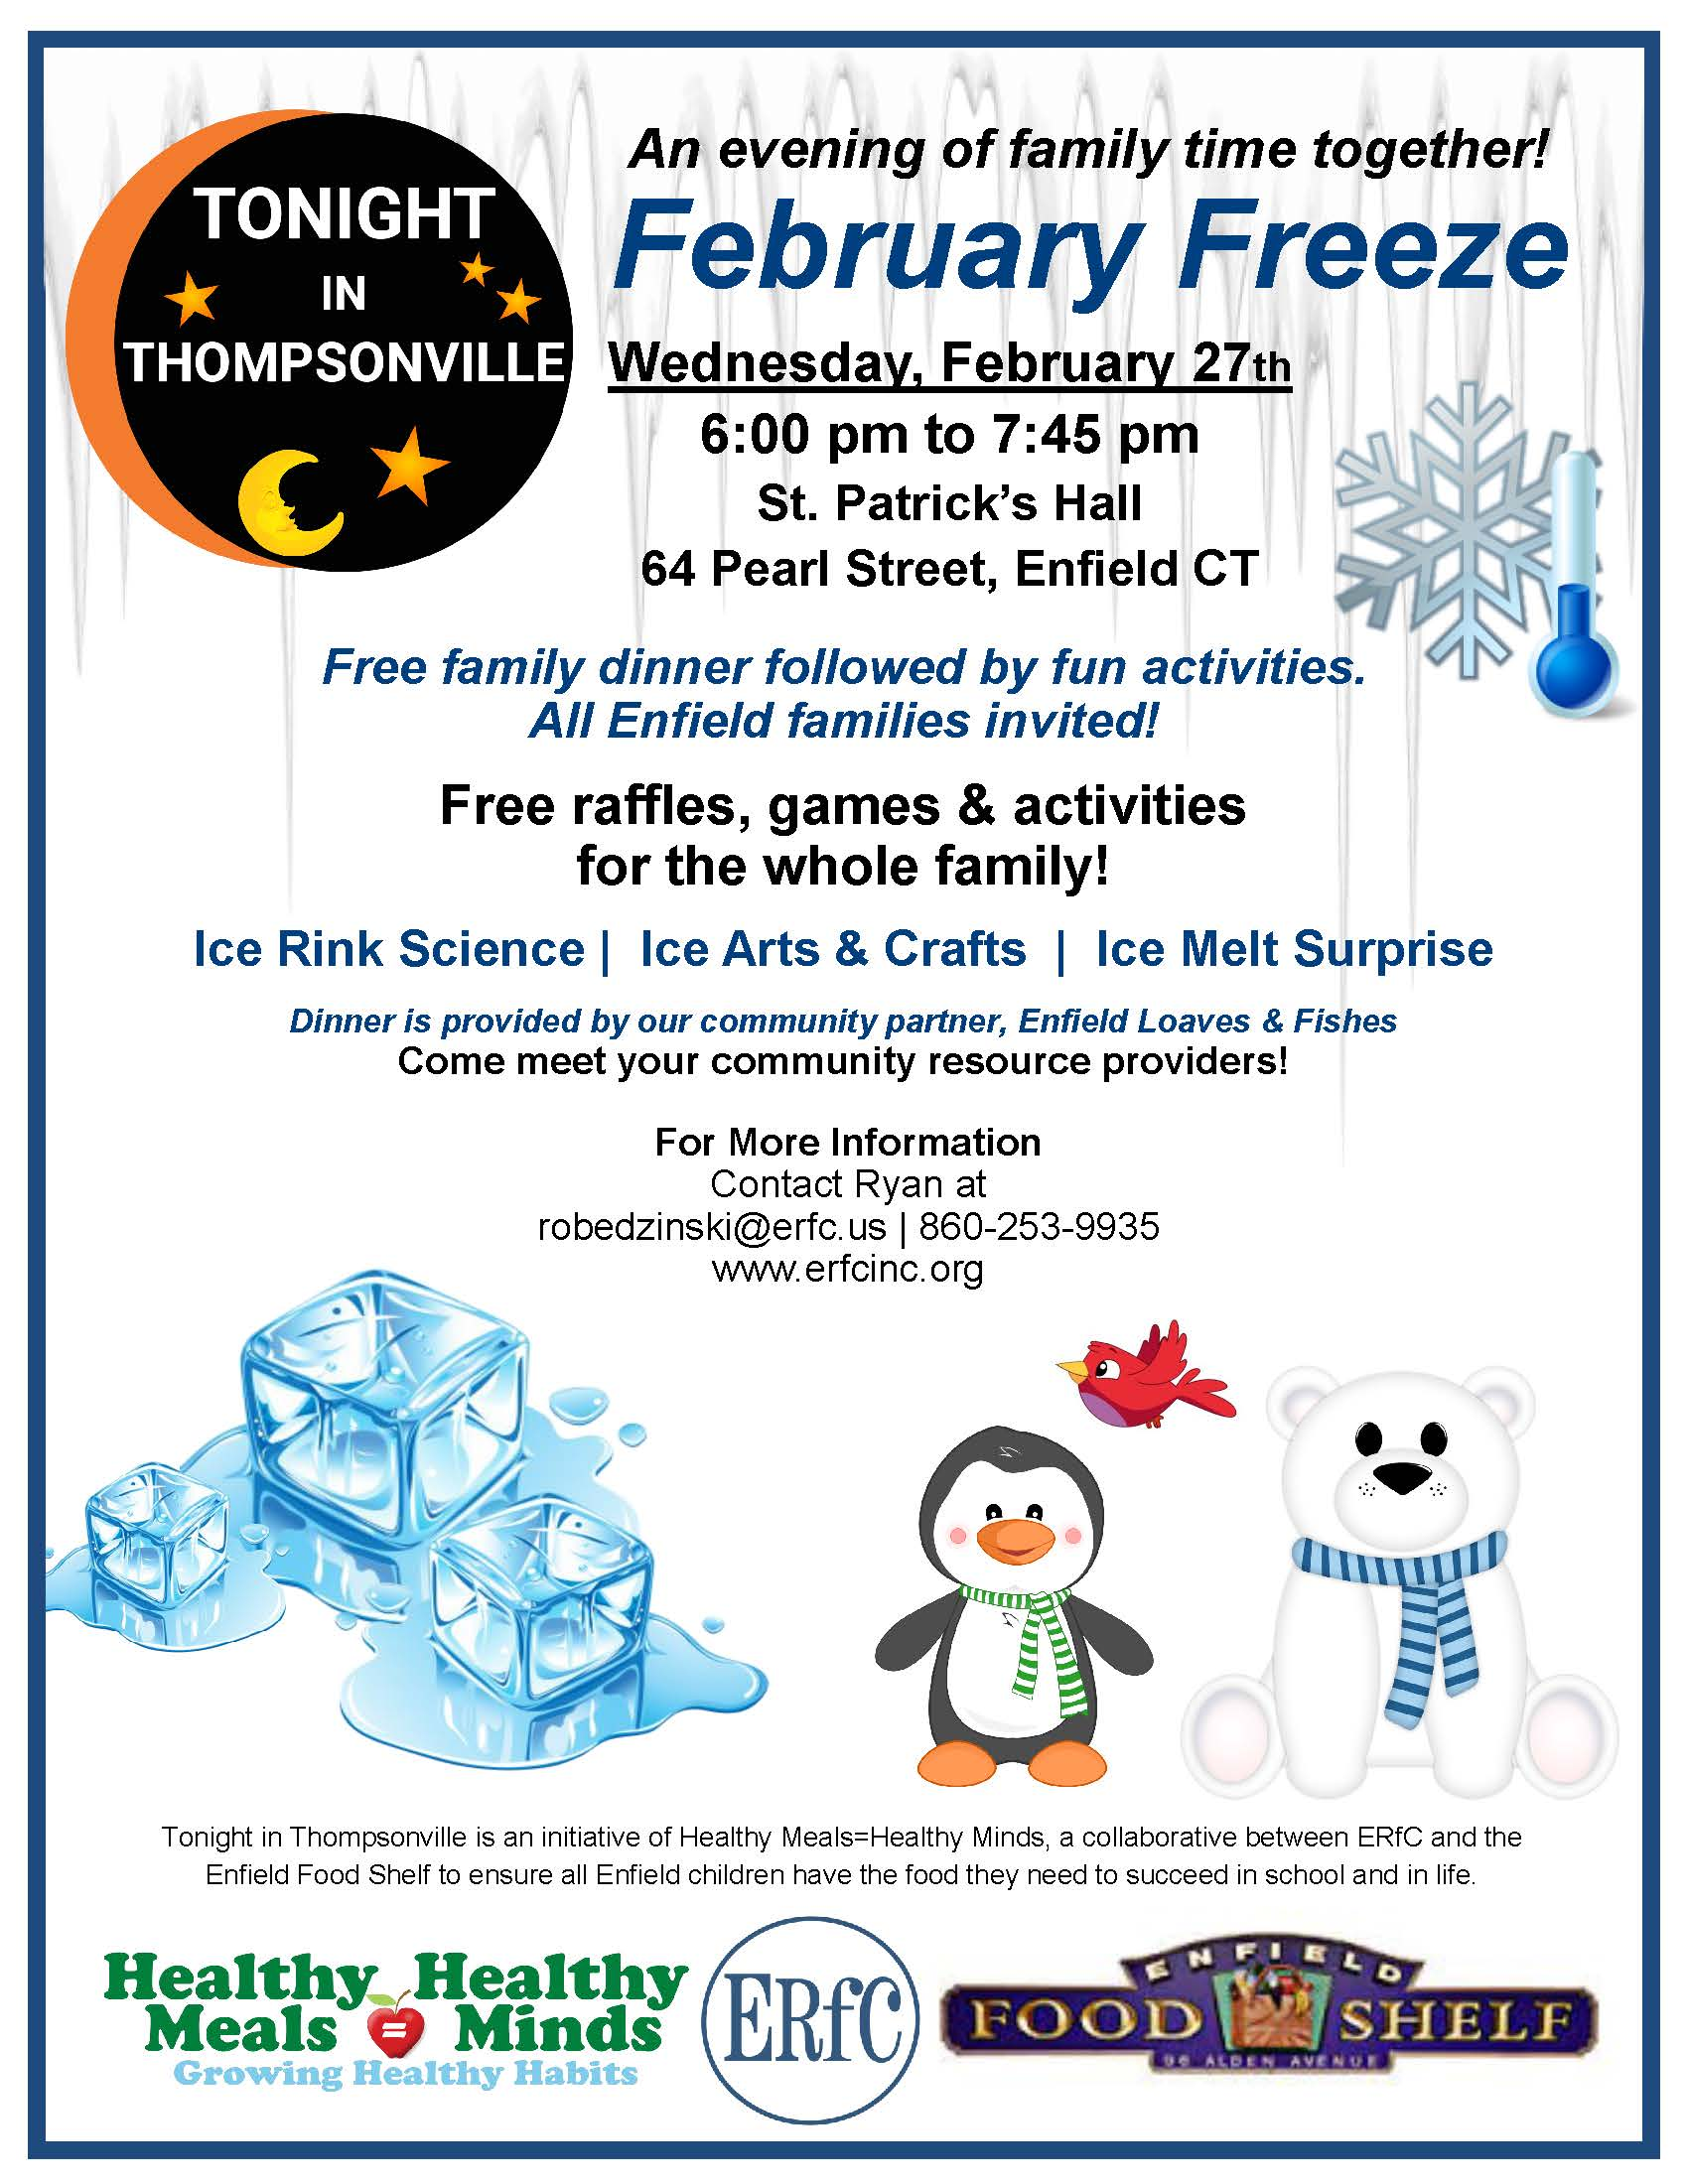 Tonight In Thompsonville - February Freeze @ St. Patricks Hall